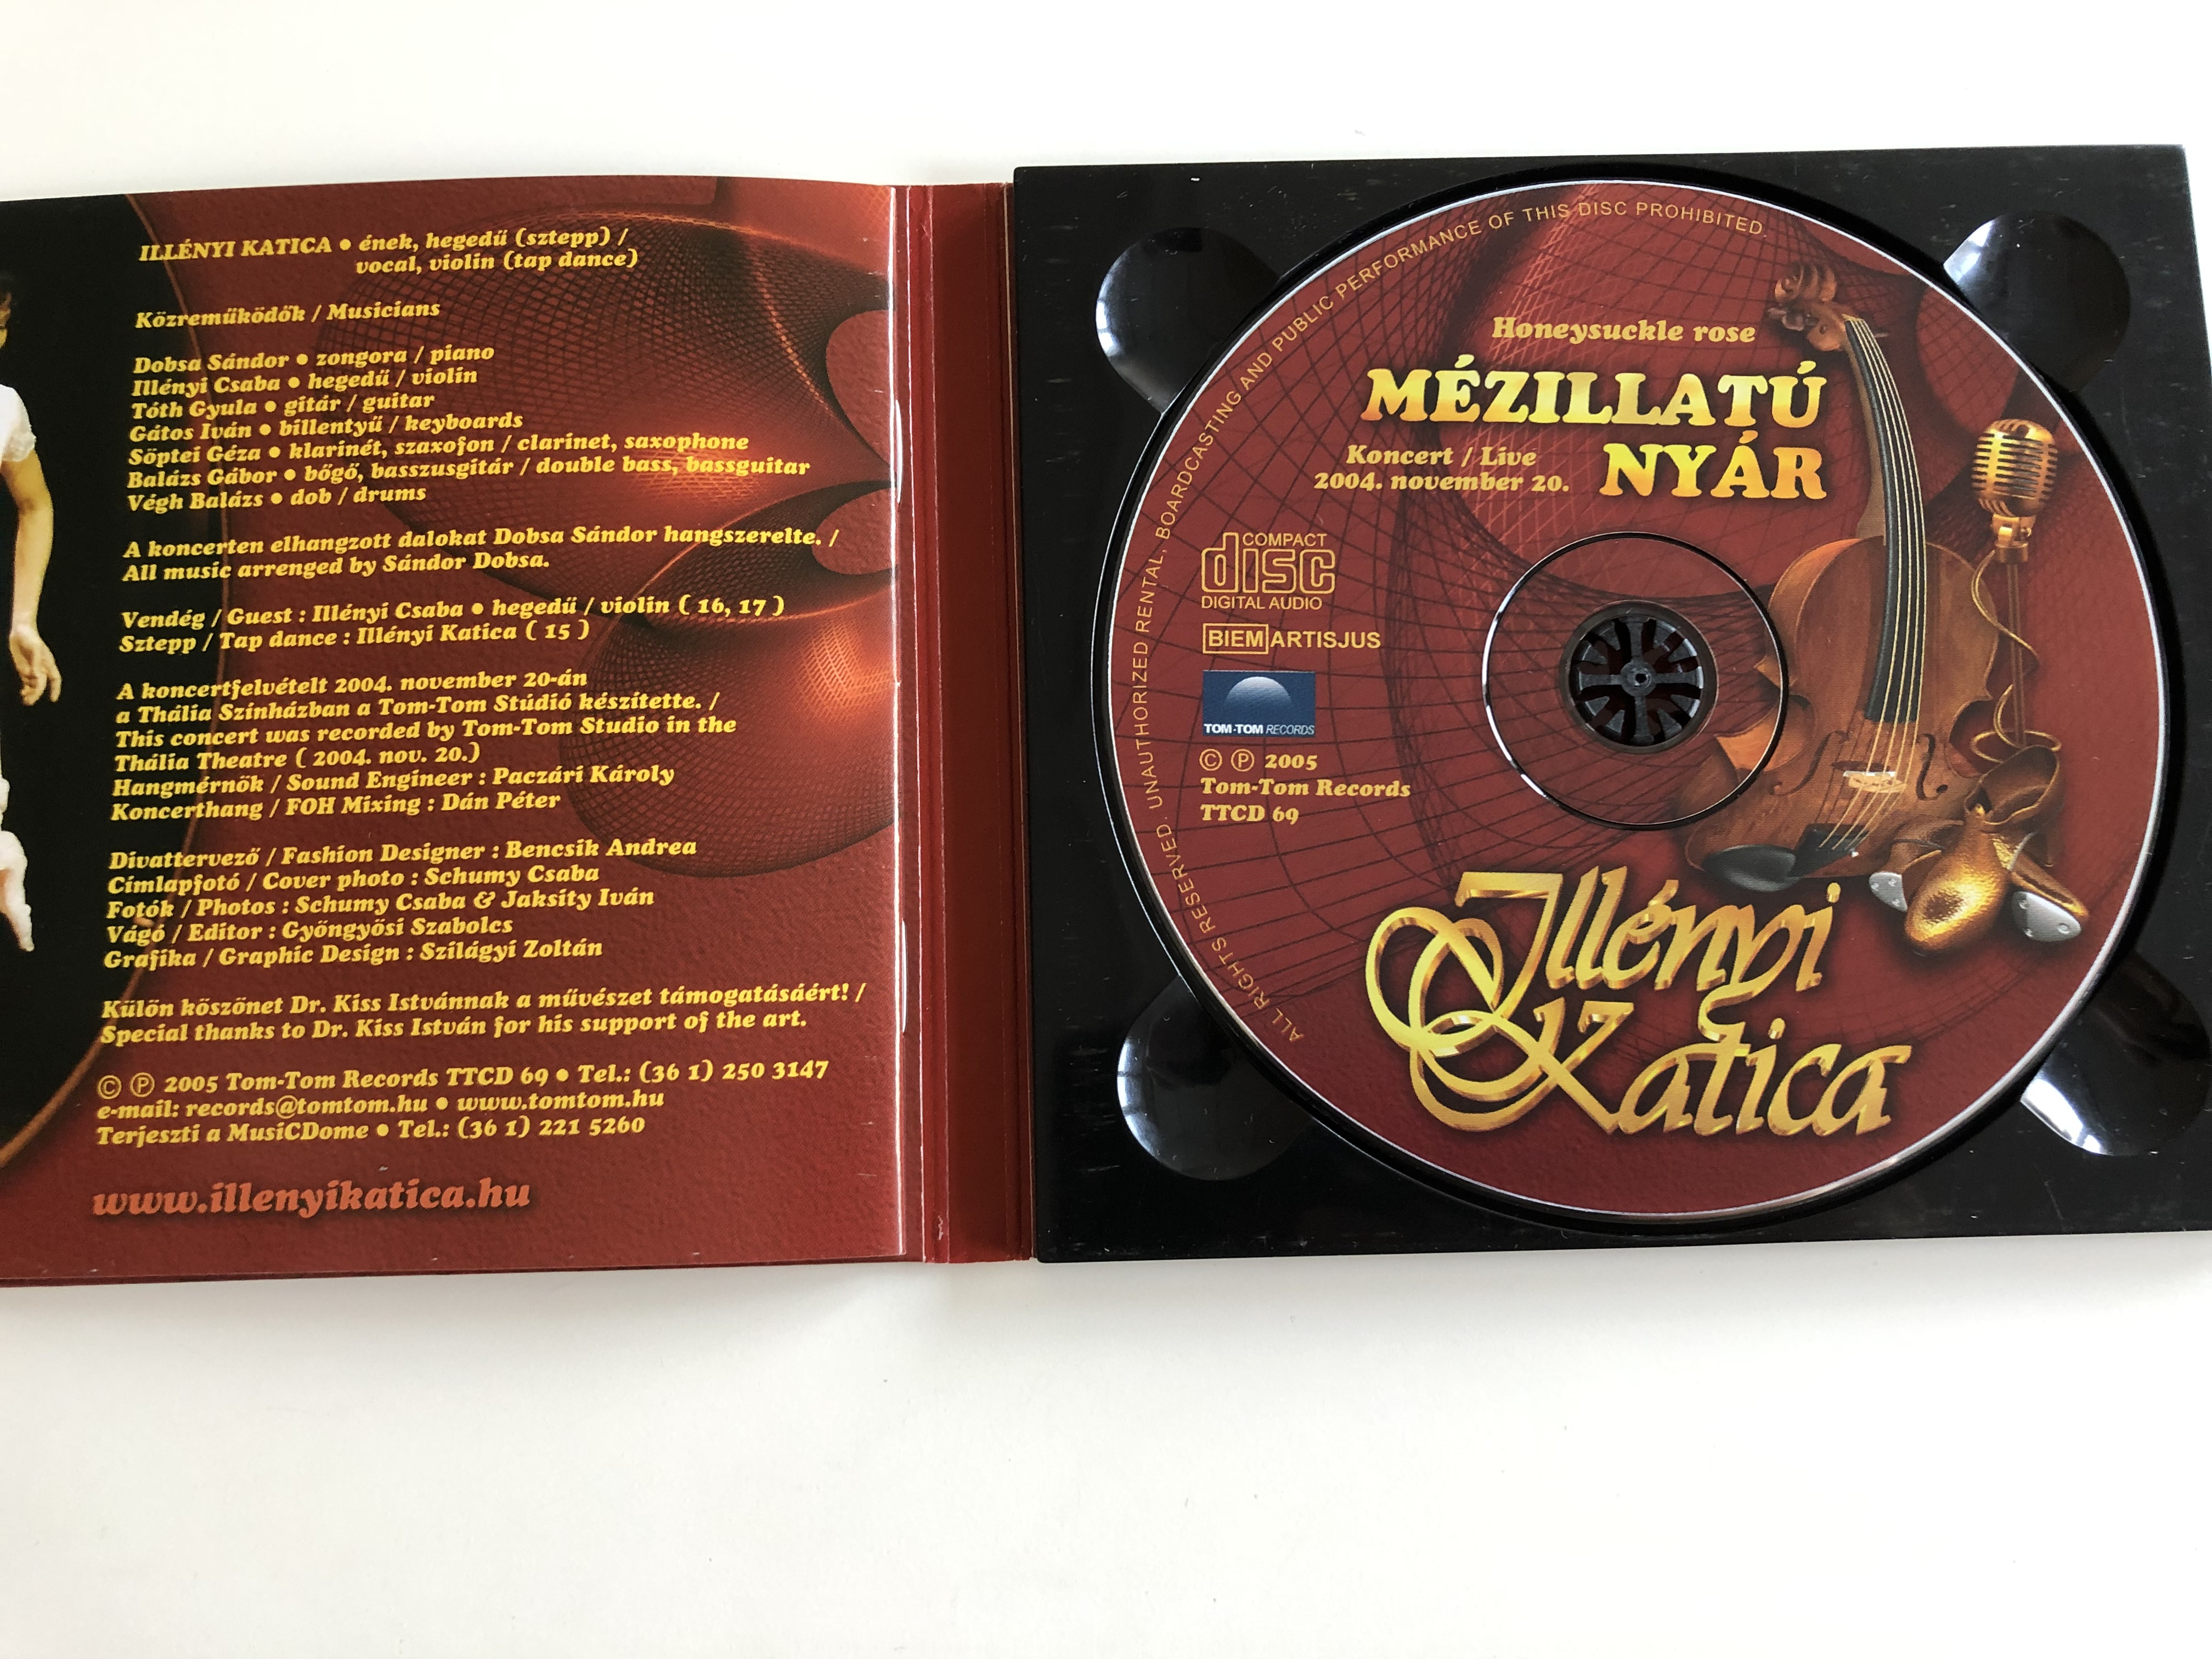 ill-nyi-katica-honeysuckle-rose-m-zillat-ny-r-live-concert-2004-audio-cd-2005-recorded-in-th-lia-theater-tom-tom-records-4-.jpg